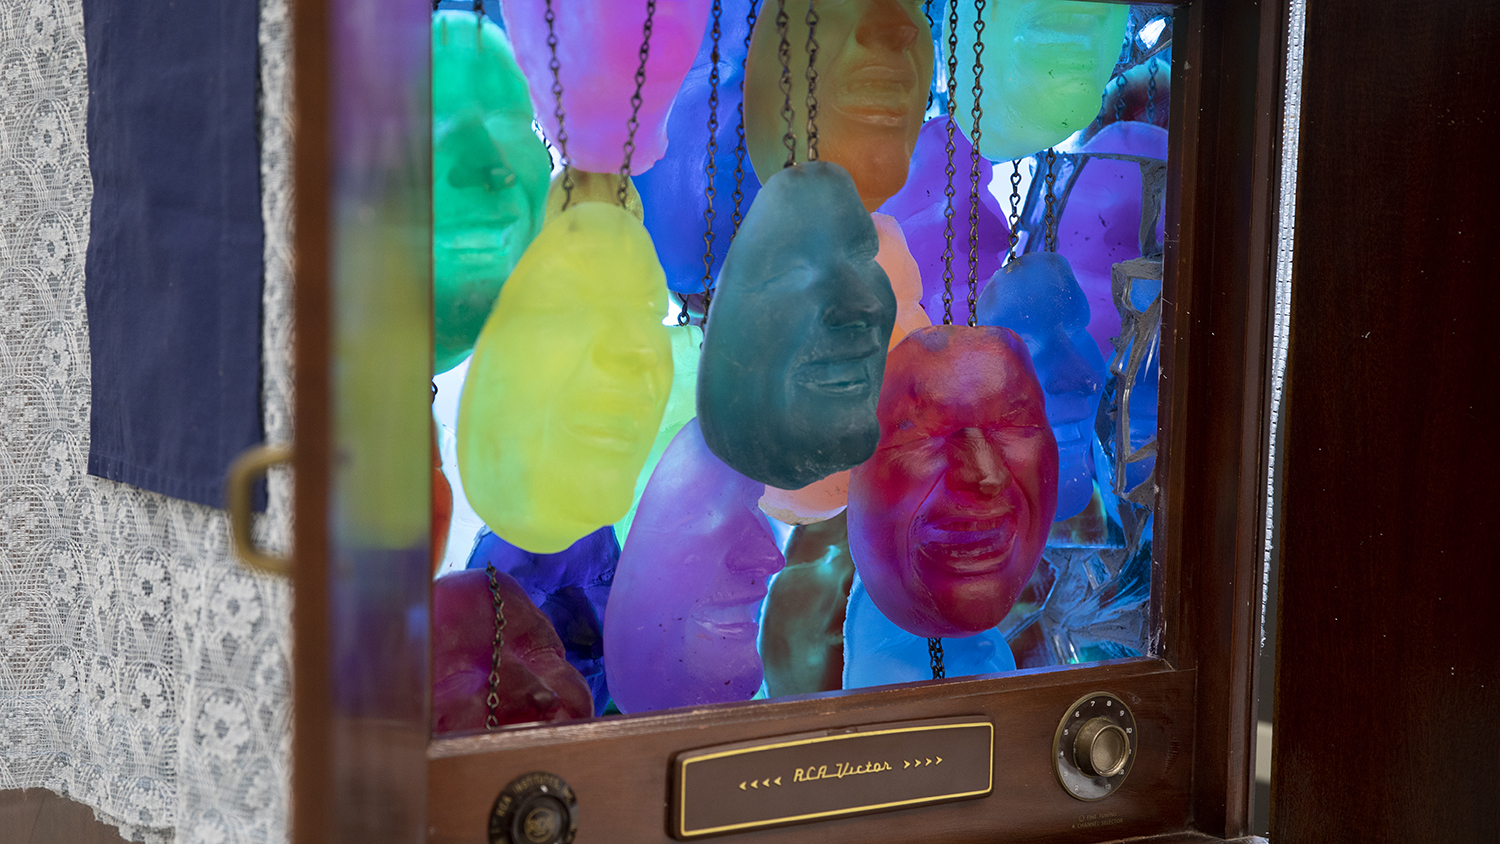 A grouping of colorful sculpted masks dangle from chains inside a retro television.